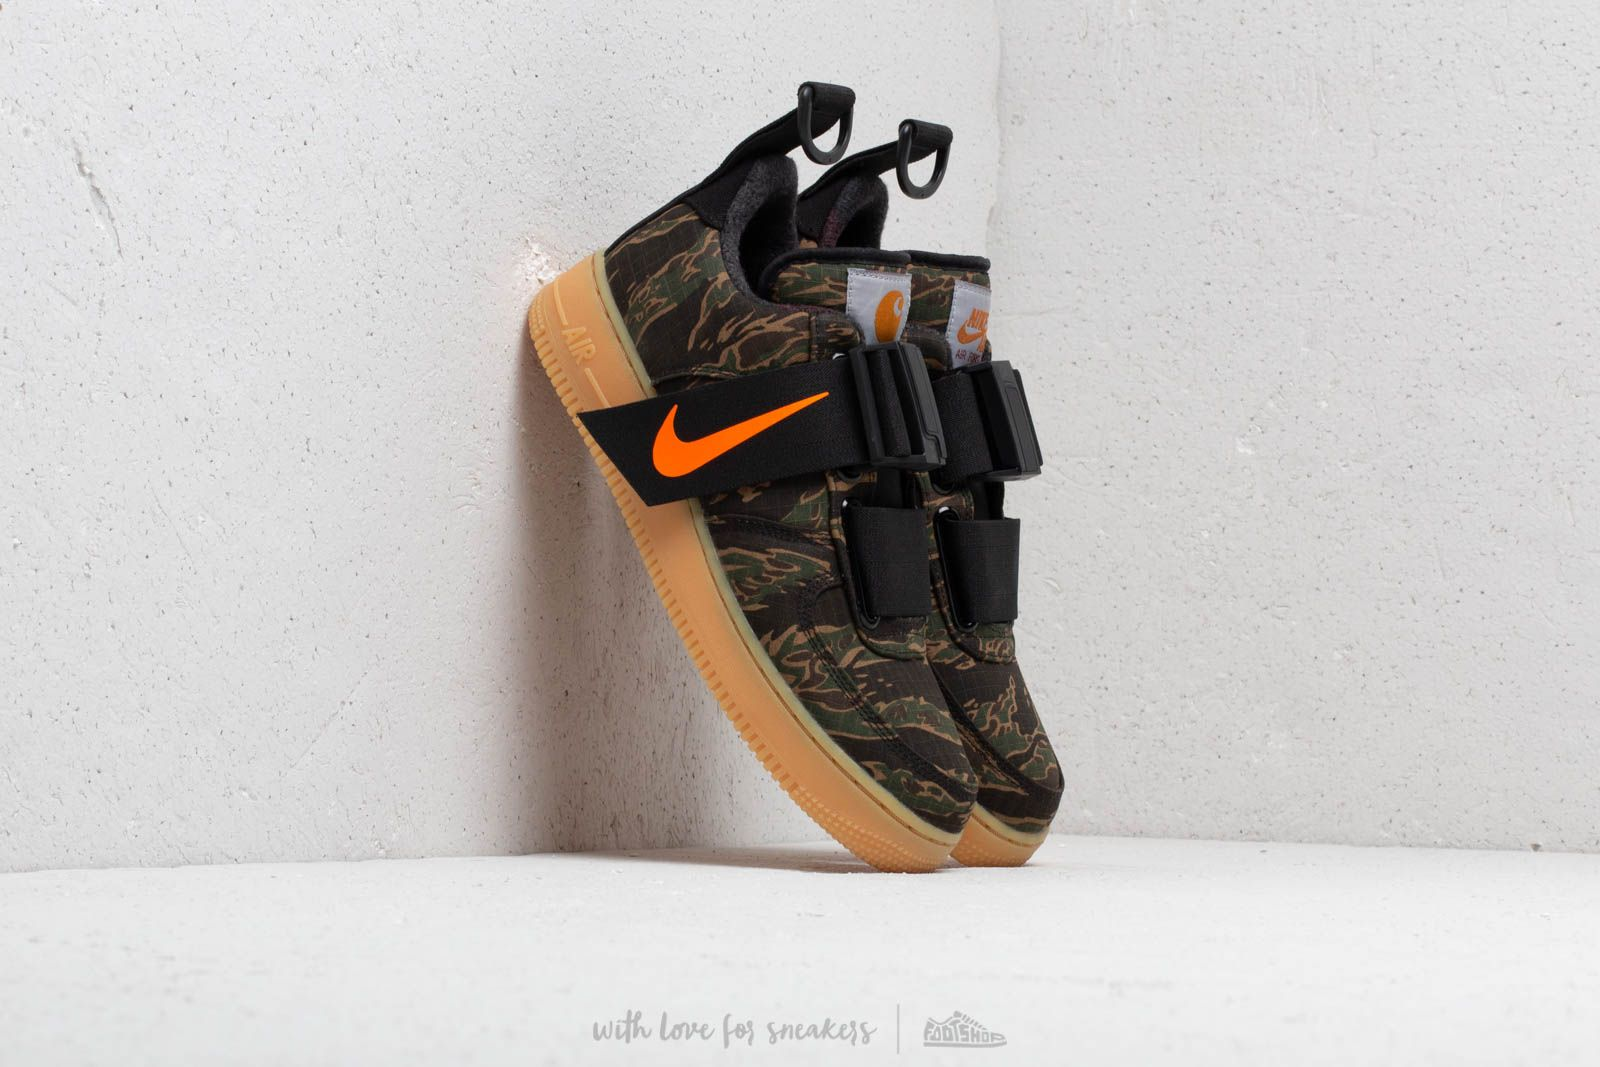 fe294bf7ae2d Nike x Carhartt WIP Air Force 1 UT Low Premium Camo Green  Total Orange at